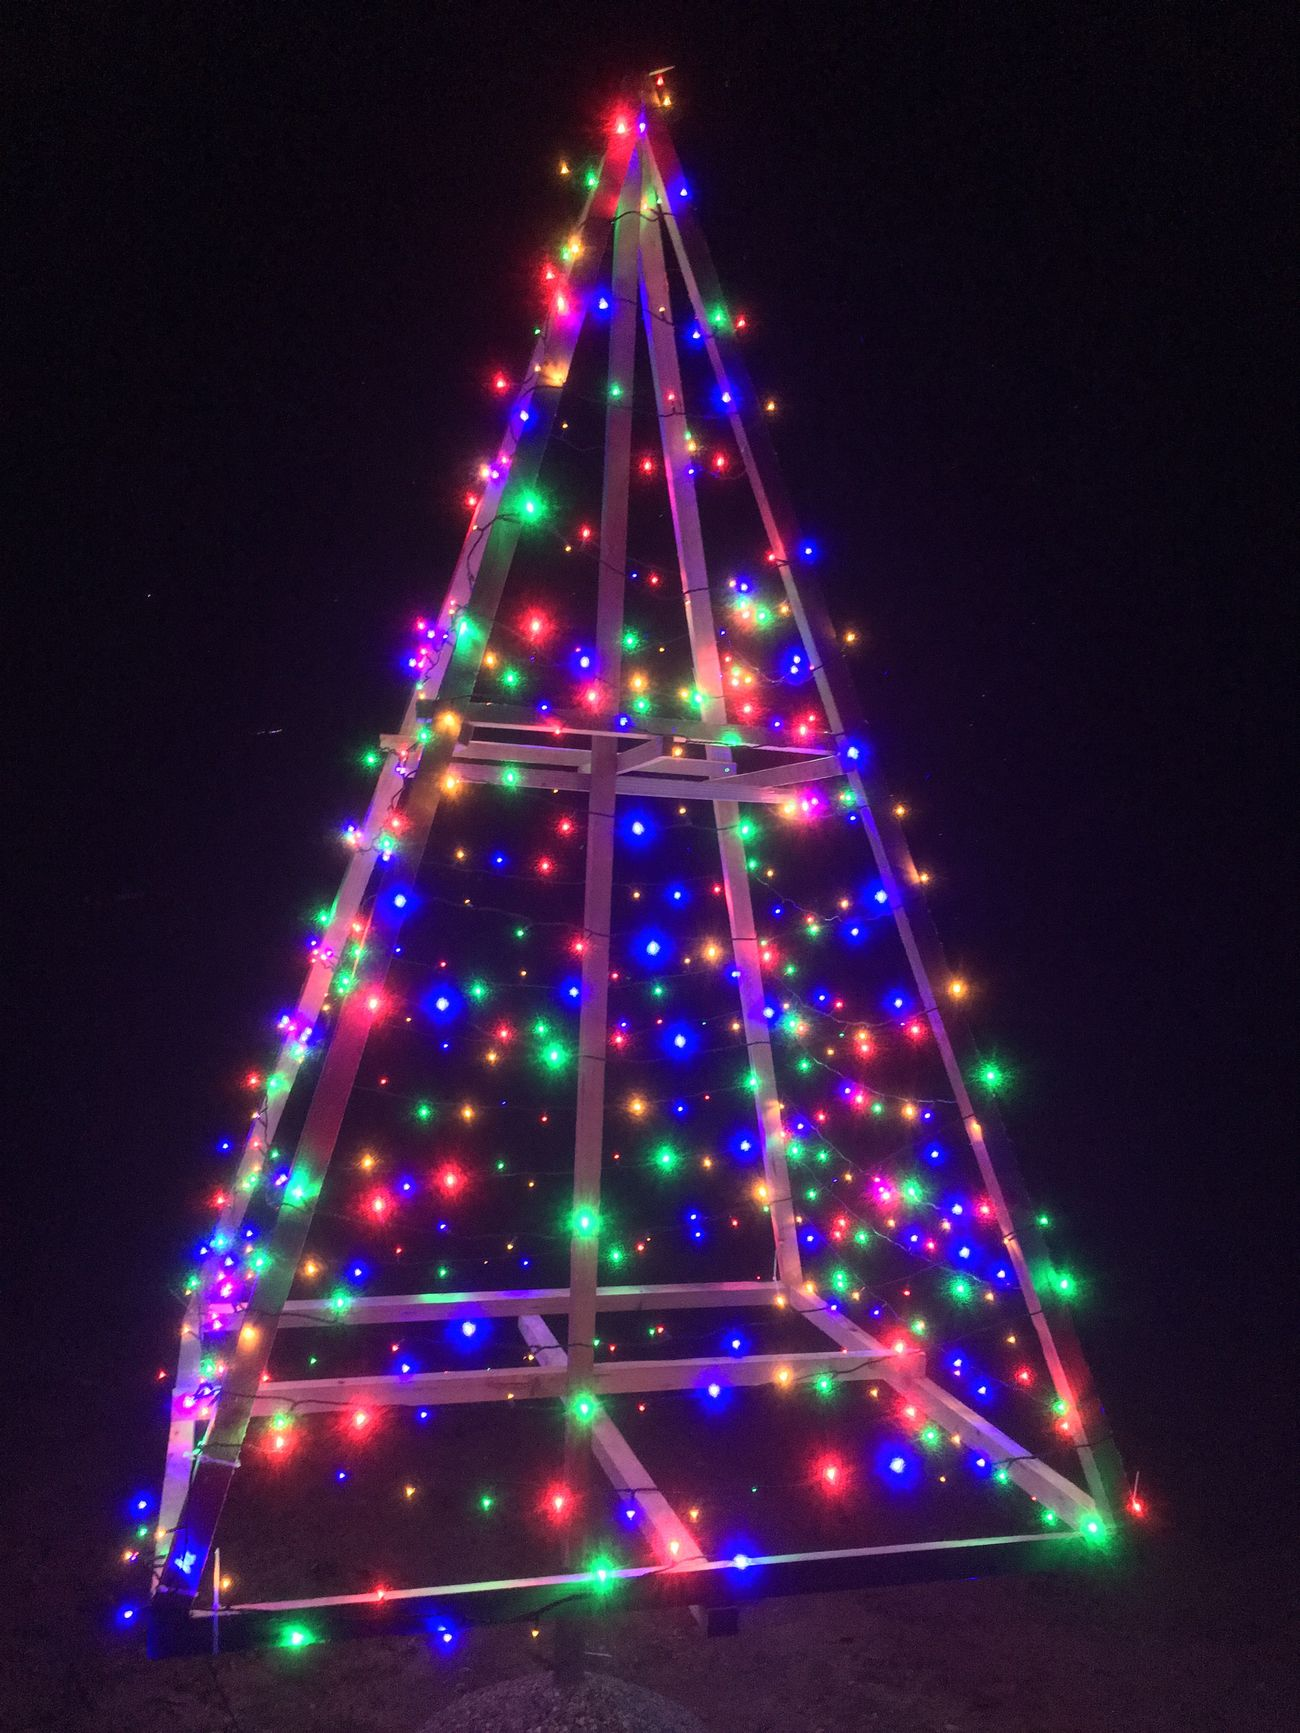 Christmas Tree Illuminated Christmas Celebration Christmas Decoration Night Christmas Lights Multi Colored No People Tree Topper Christmas Ornament Holiday - Event Indoors  Sky